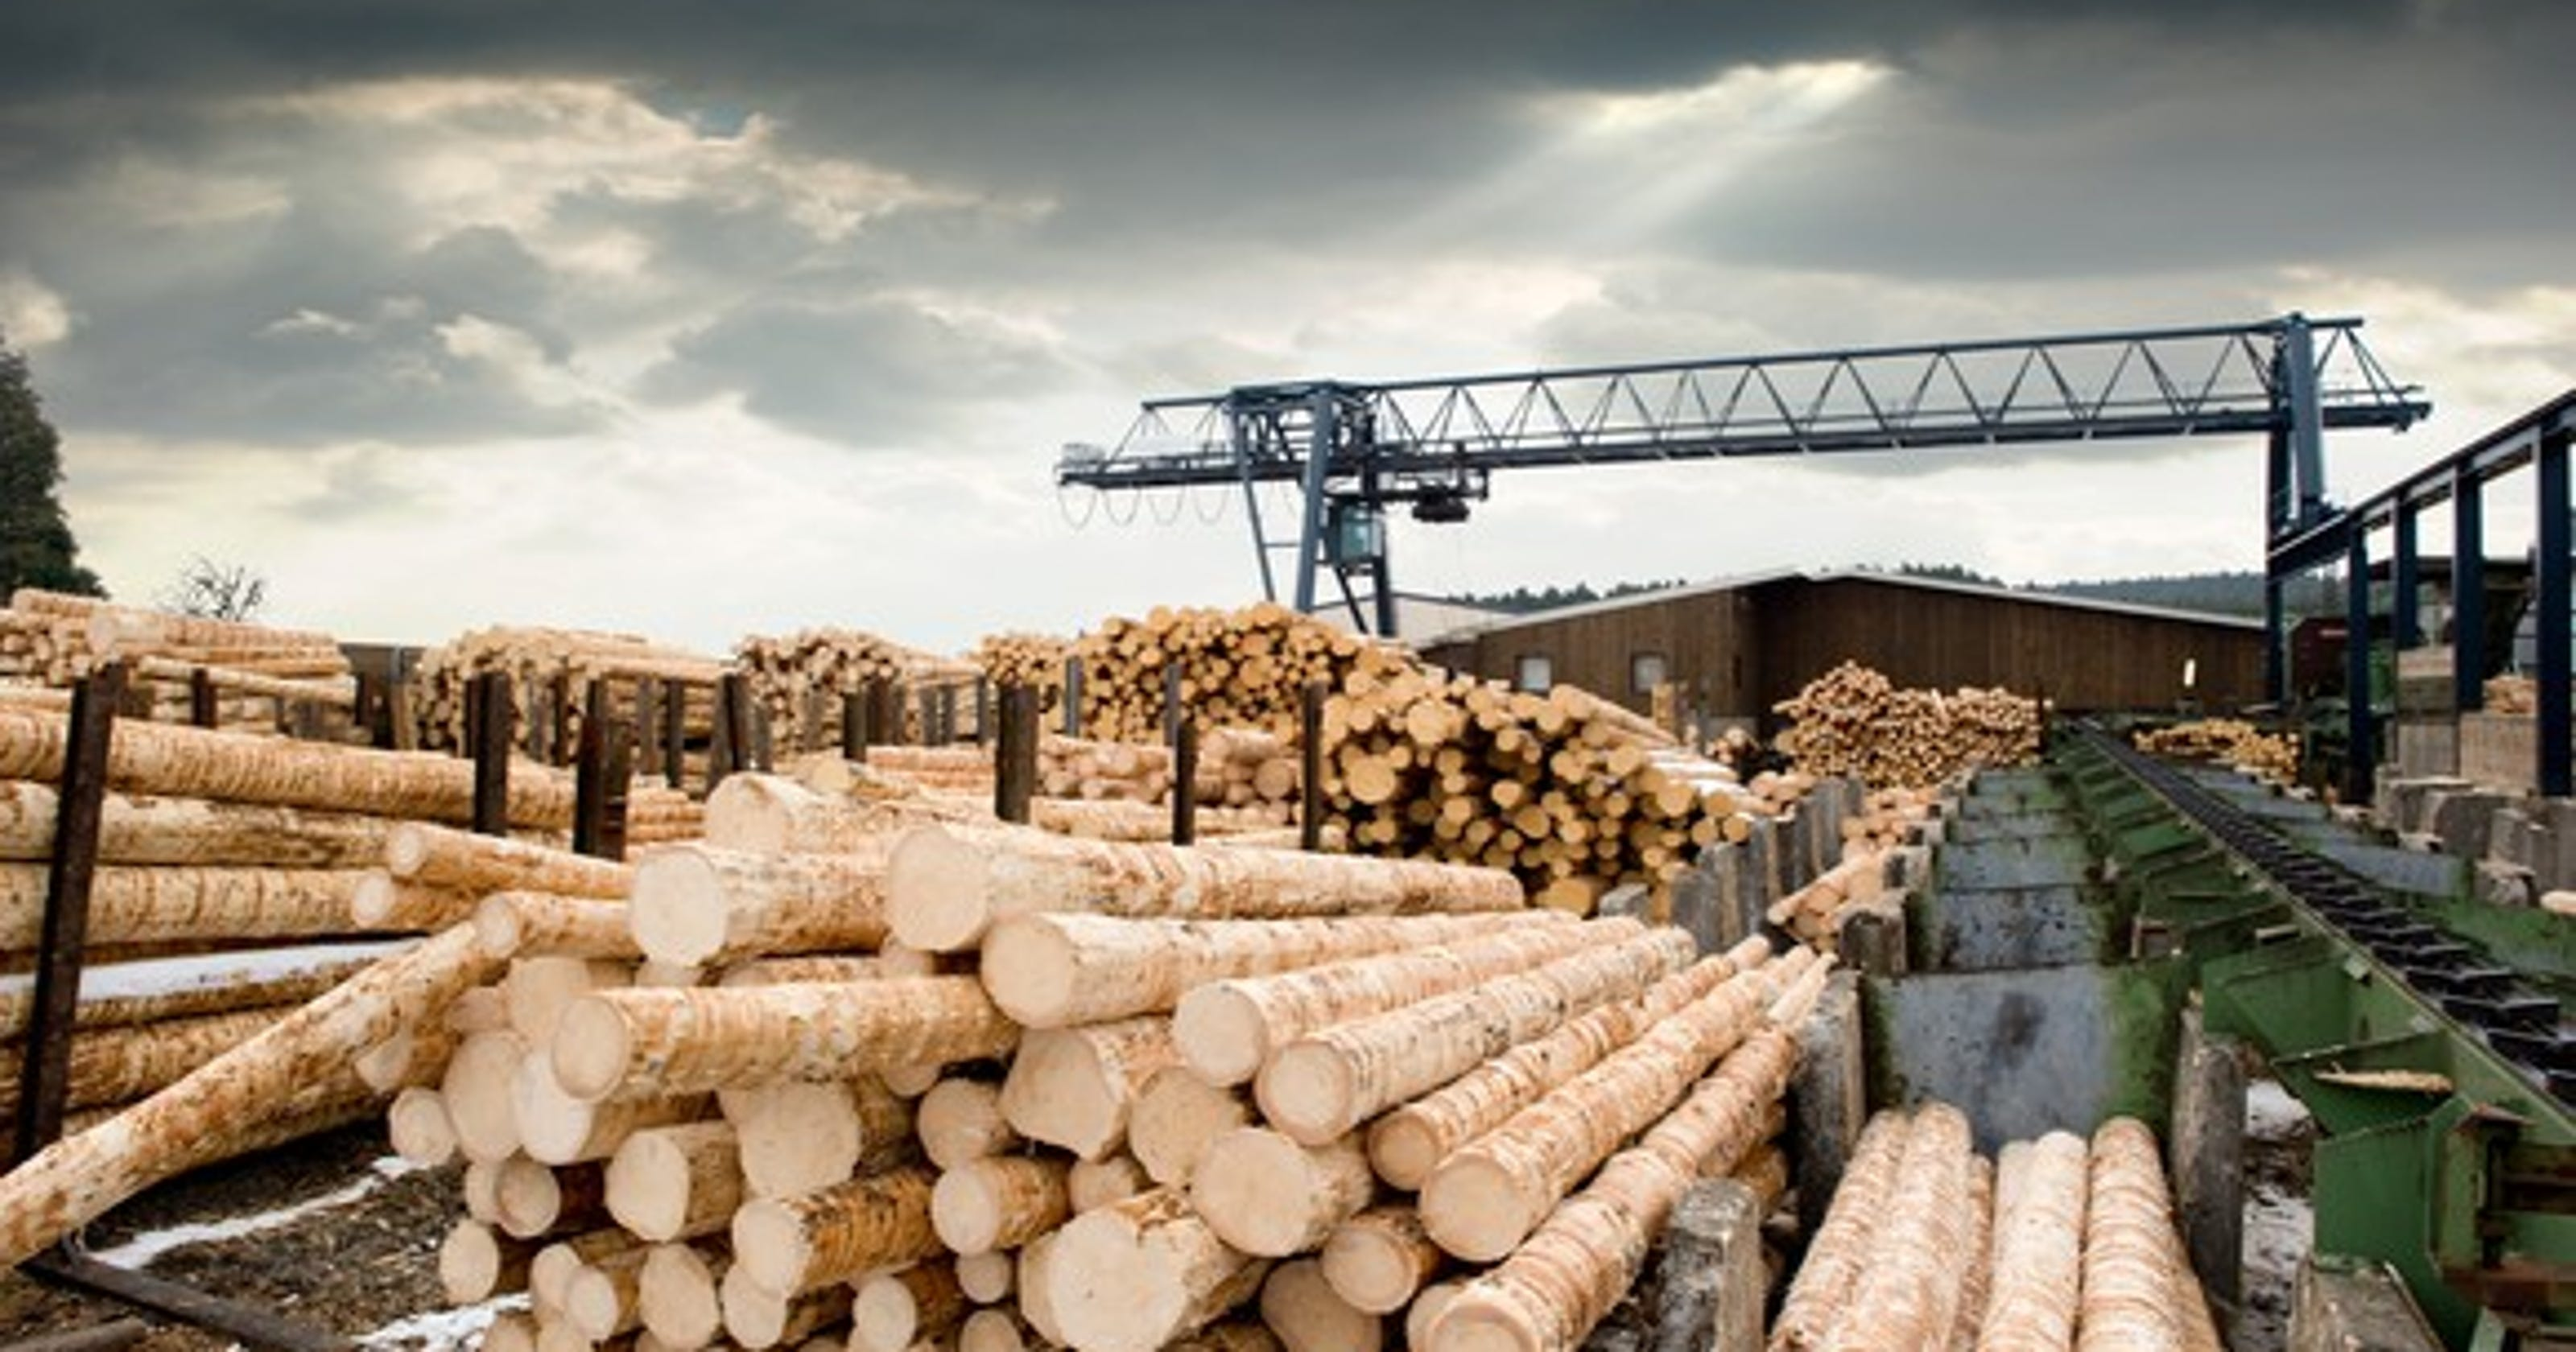 New lumber mill will employ 110 in Pike County